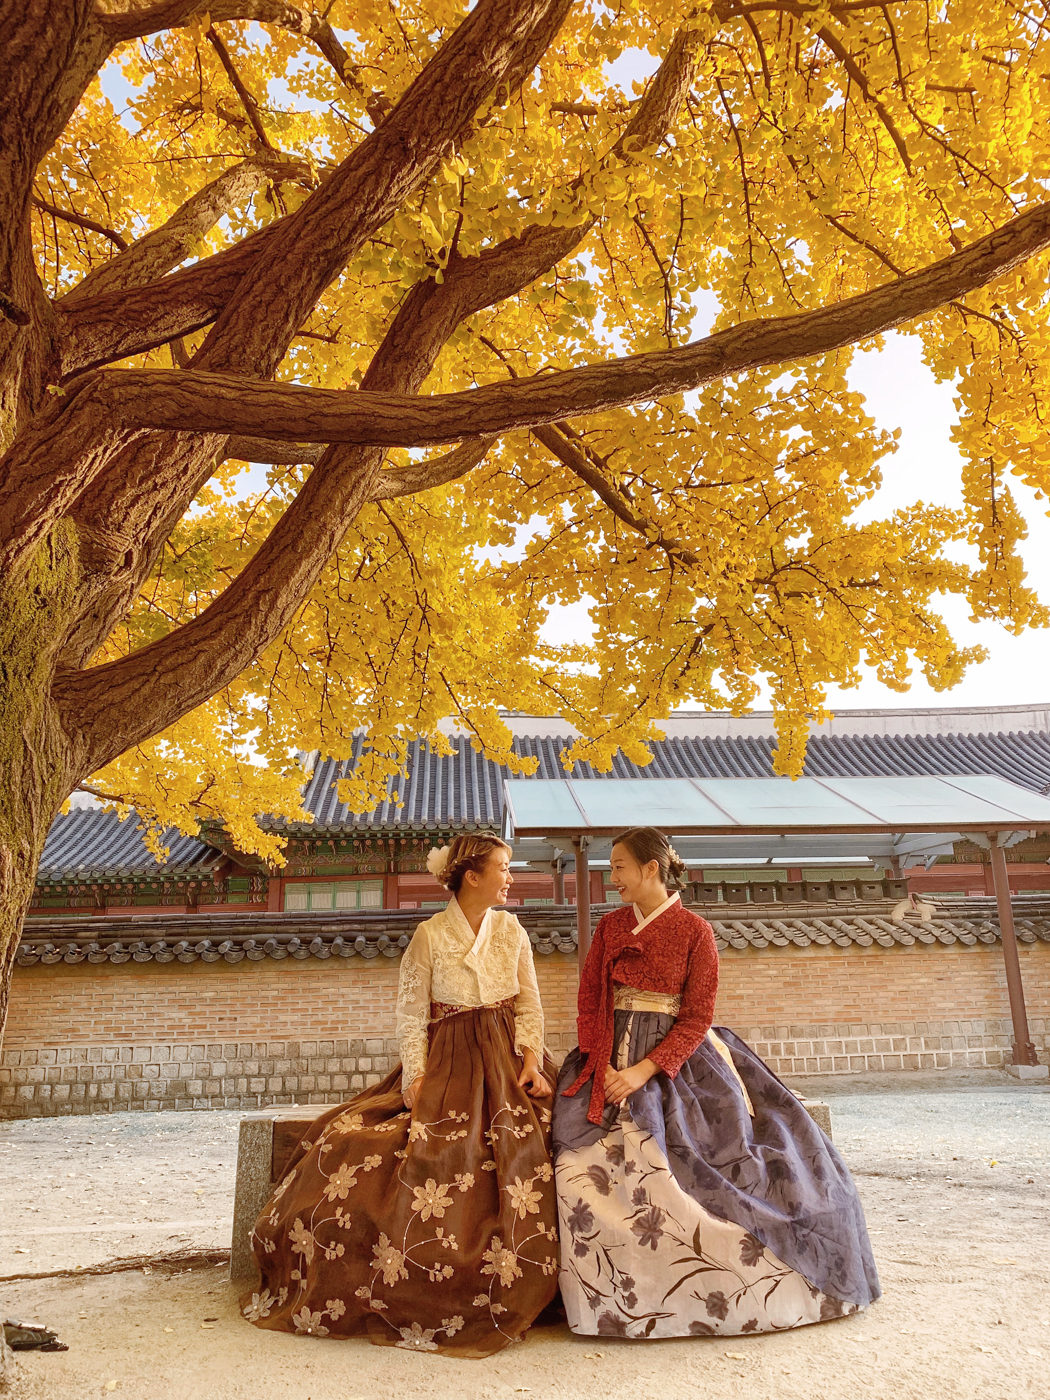 Yellow Fall Leaves in Gyeongbokgung Palace | Seoul, Korea Travel Guide | The Chic Diary